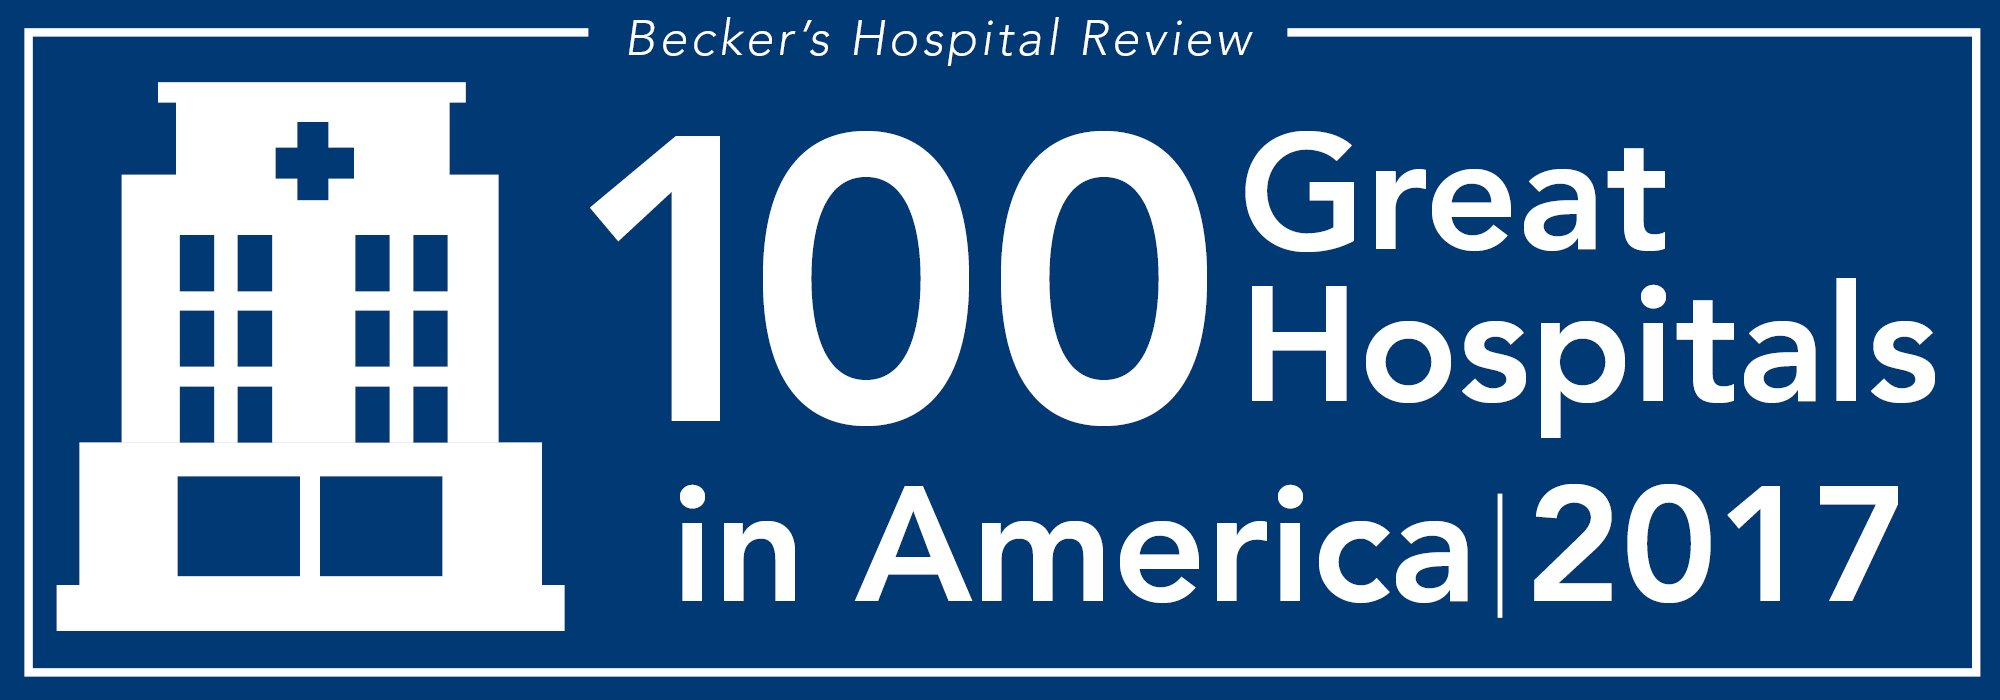 Becker's Hospital Review Top 100 Great Hospitals in America